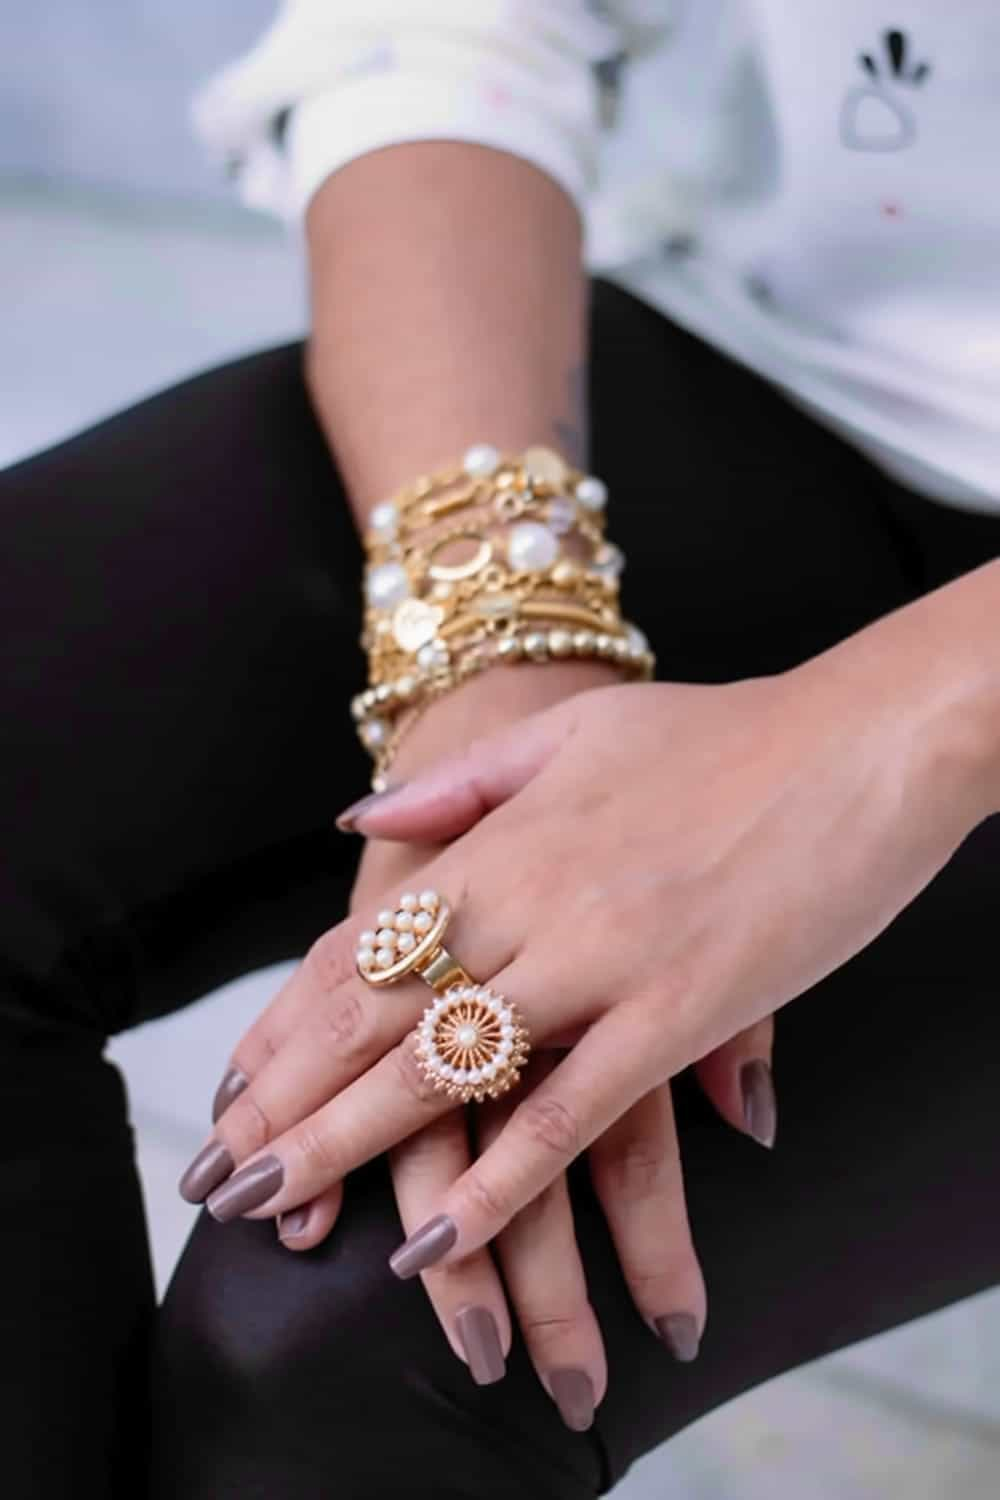 Close up of woman's hands with stacked rings and bracelets